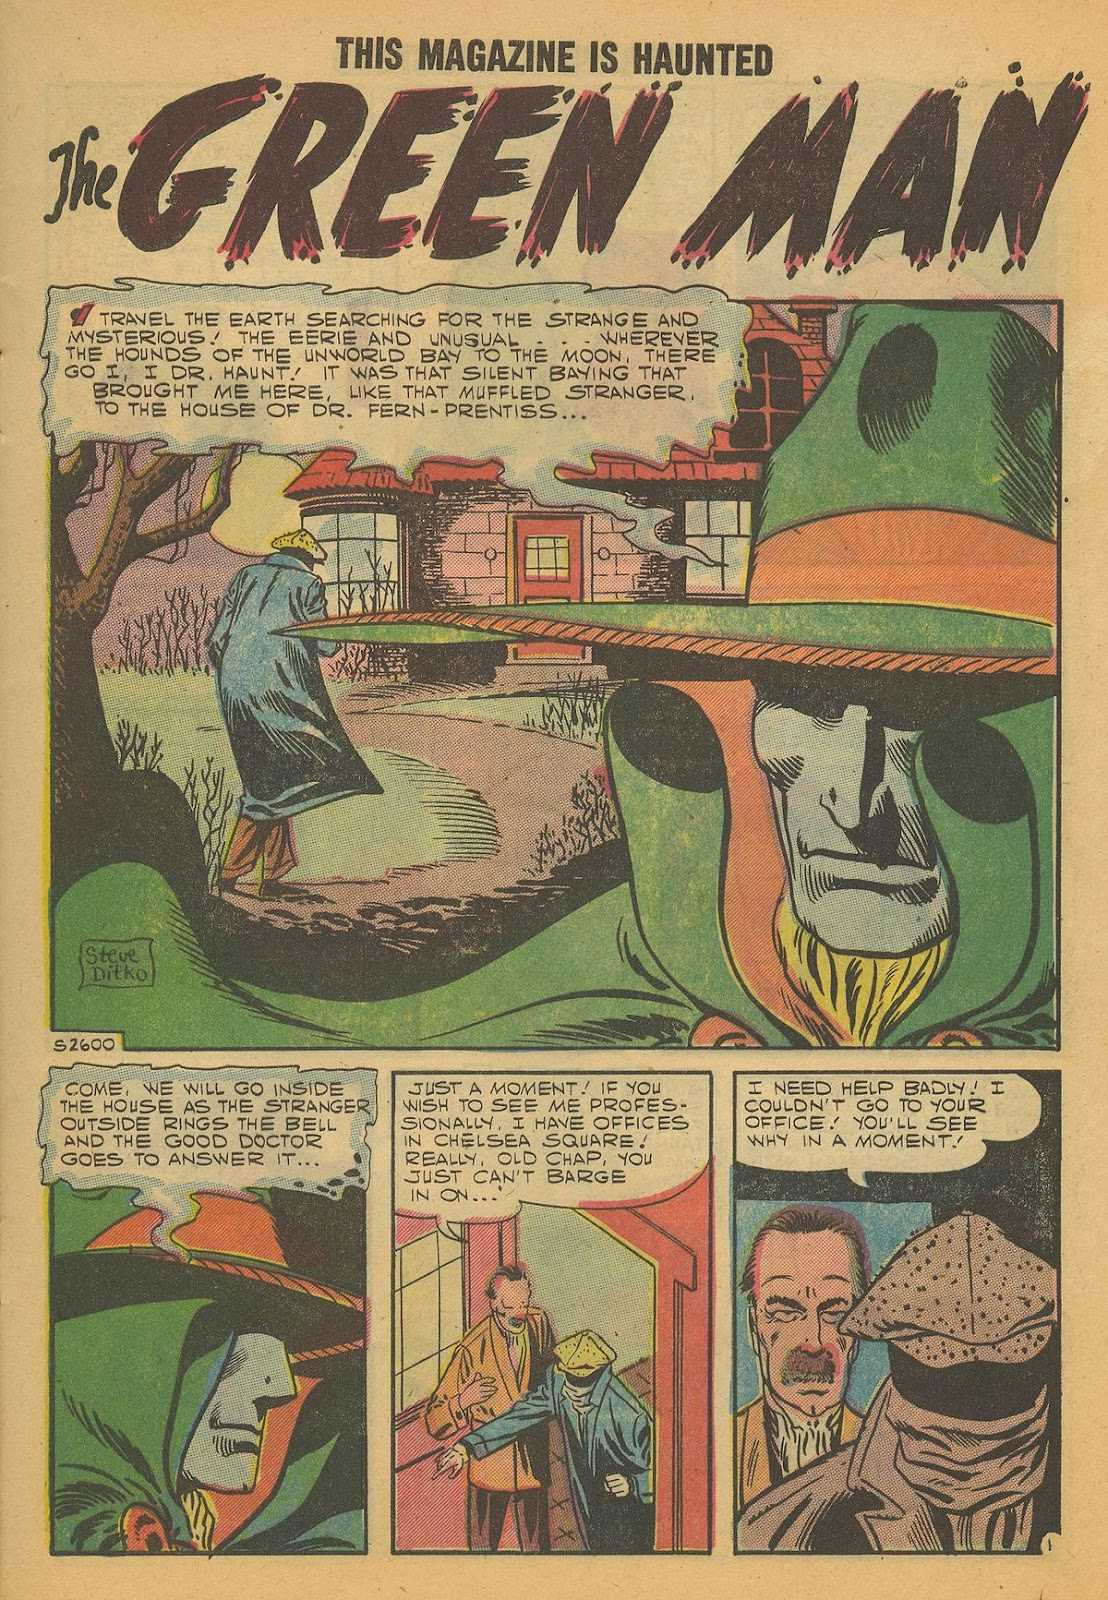 Read online This Magazine Is Haunted comic -  Issue #14 - 9